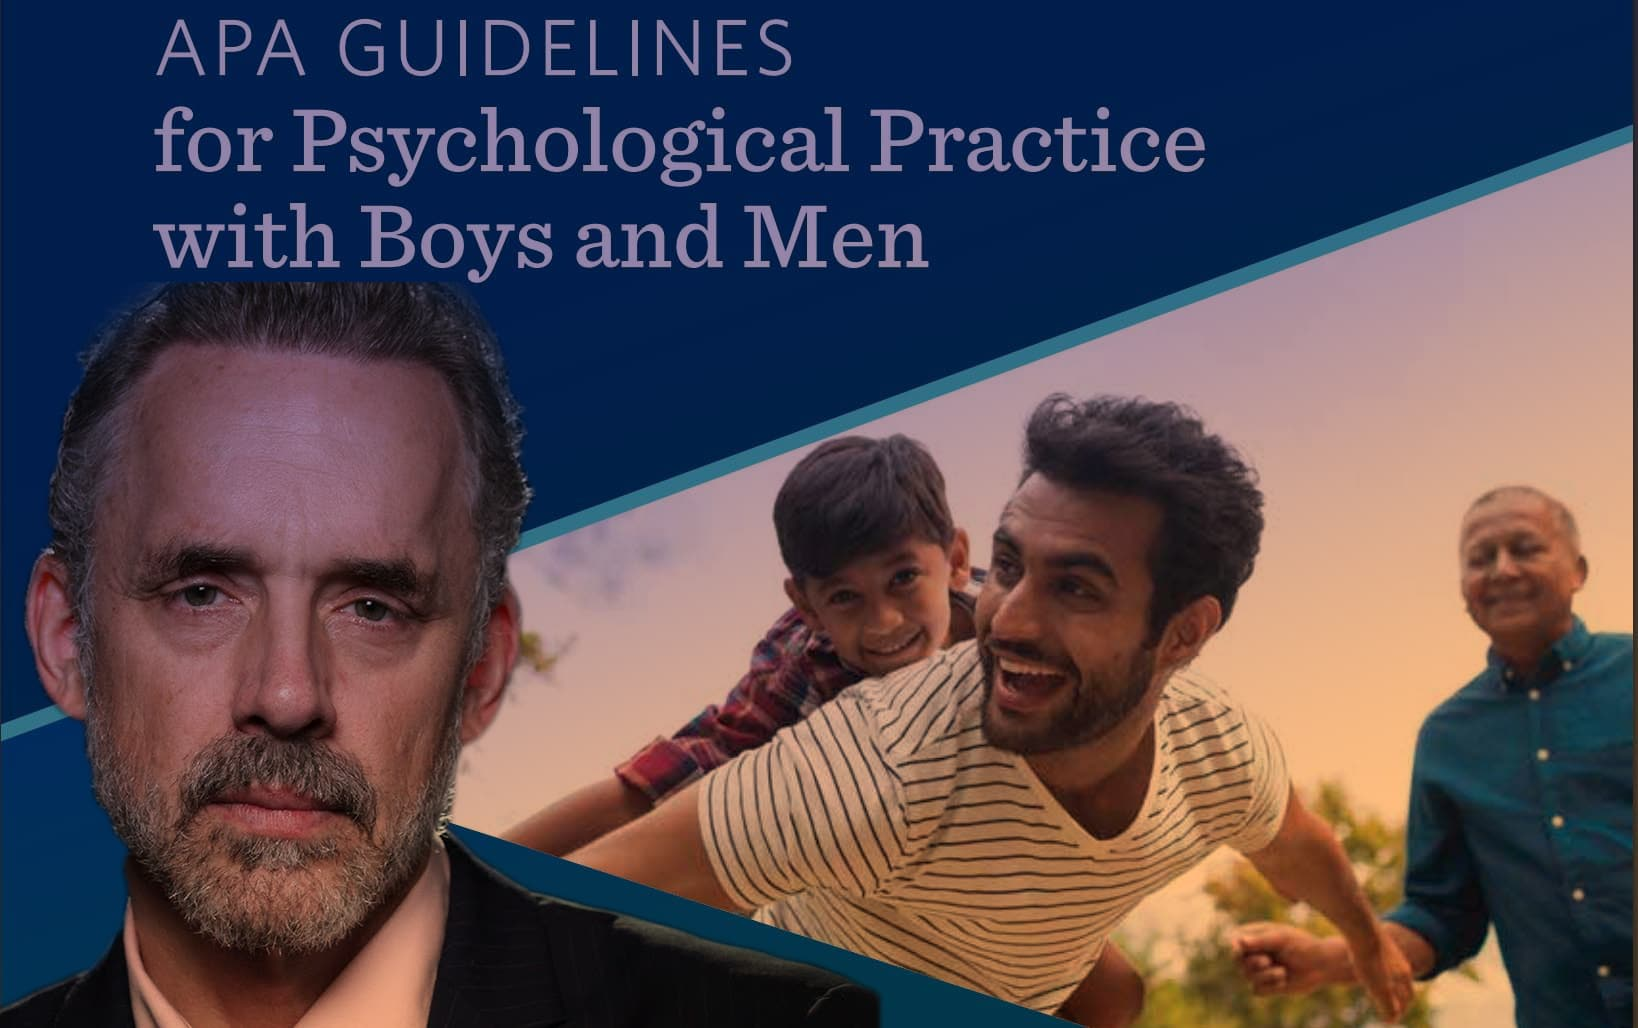 Jordan B Peterson: Comment on the APA Guidelines for the Treatment of Boys and Men 7